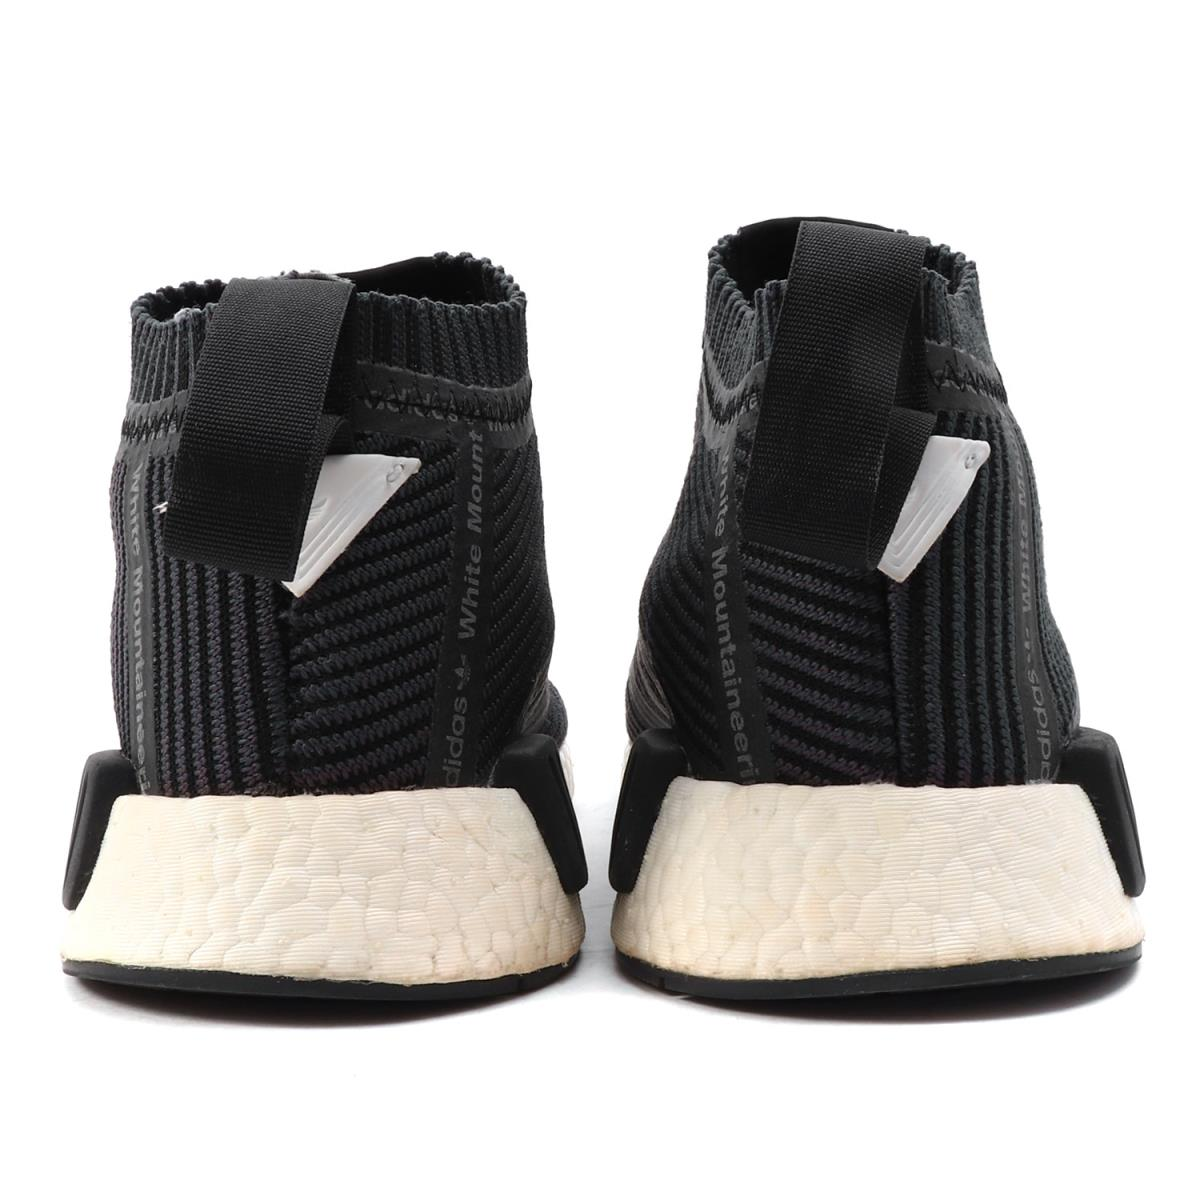 0c18634af White Mountaineering (ホワイトマウンテニアリング) 16A W X adidas WM NMD CITY SOCK (S80529)  black US8(26cm)